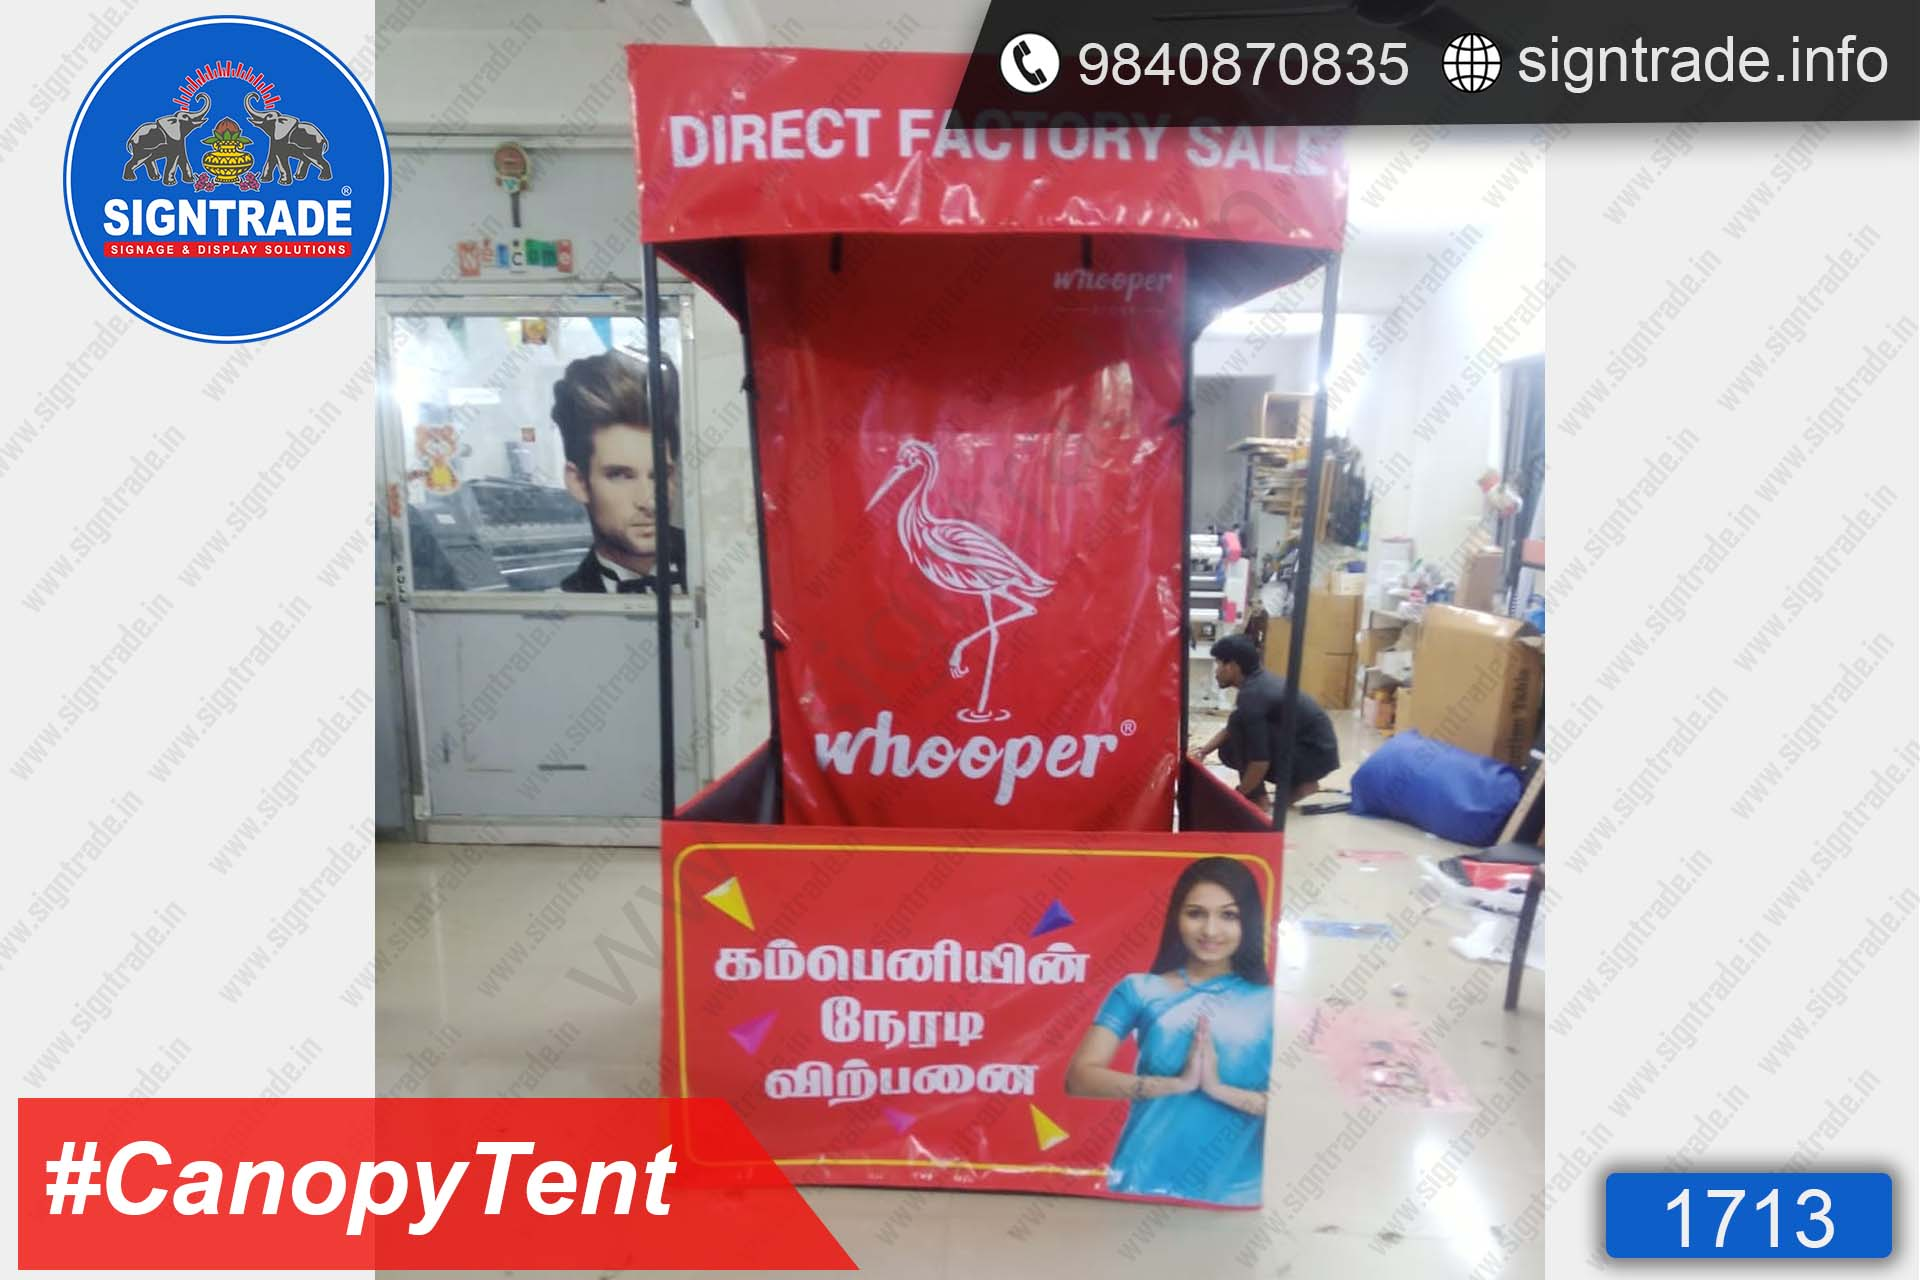 Whooper - Canopy Tent - SIGNTRADE - Promotional Canopy Tent Manufacturers in Chennai